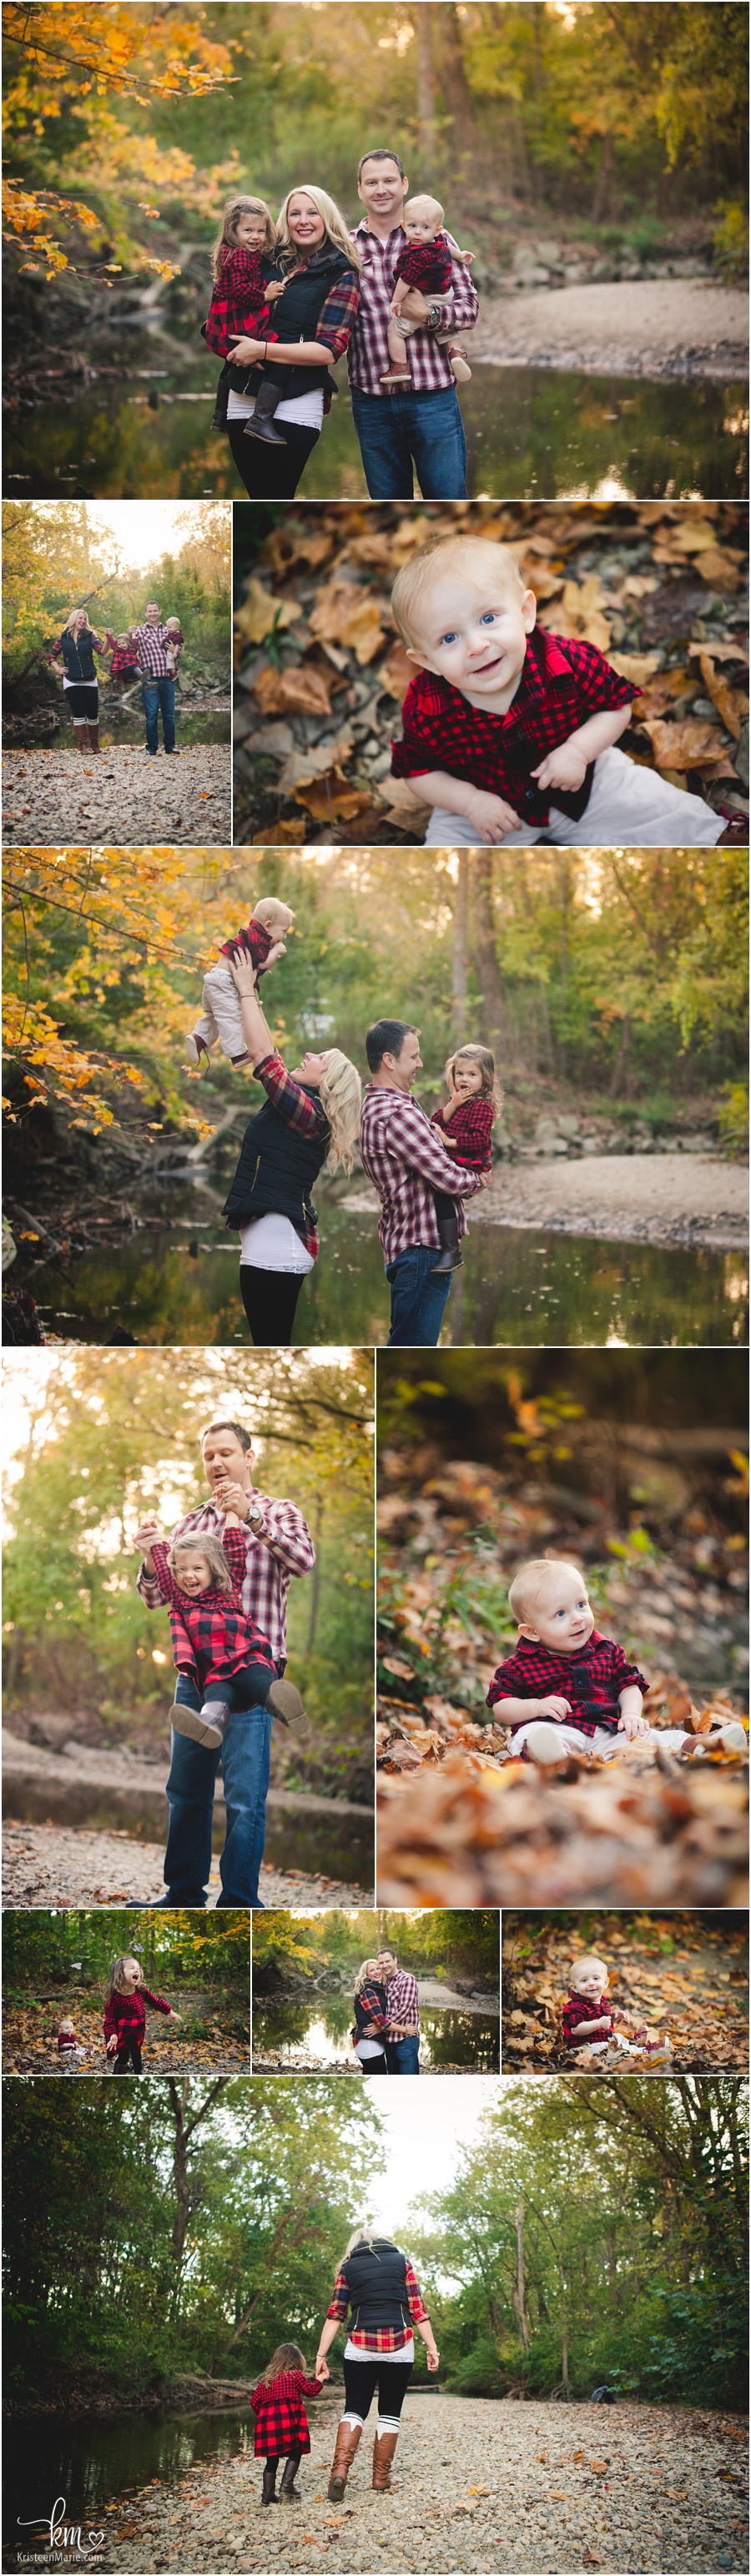 family pictures in fall with stream and rocks - Indianapolis, IN